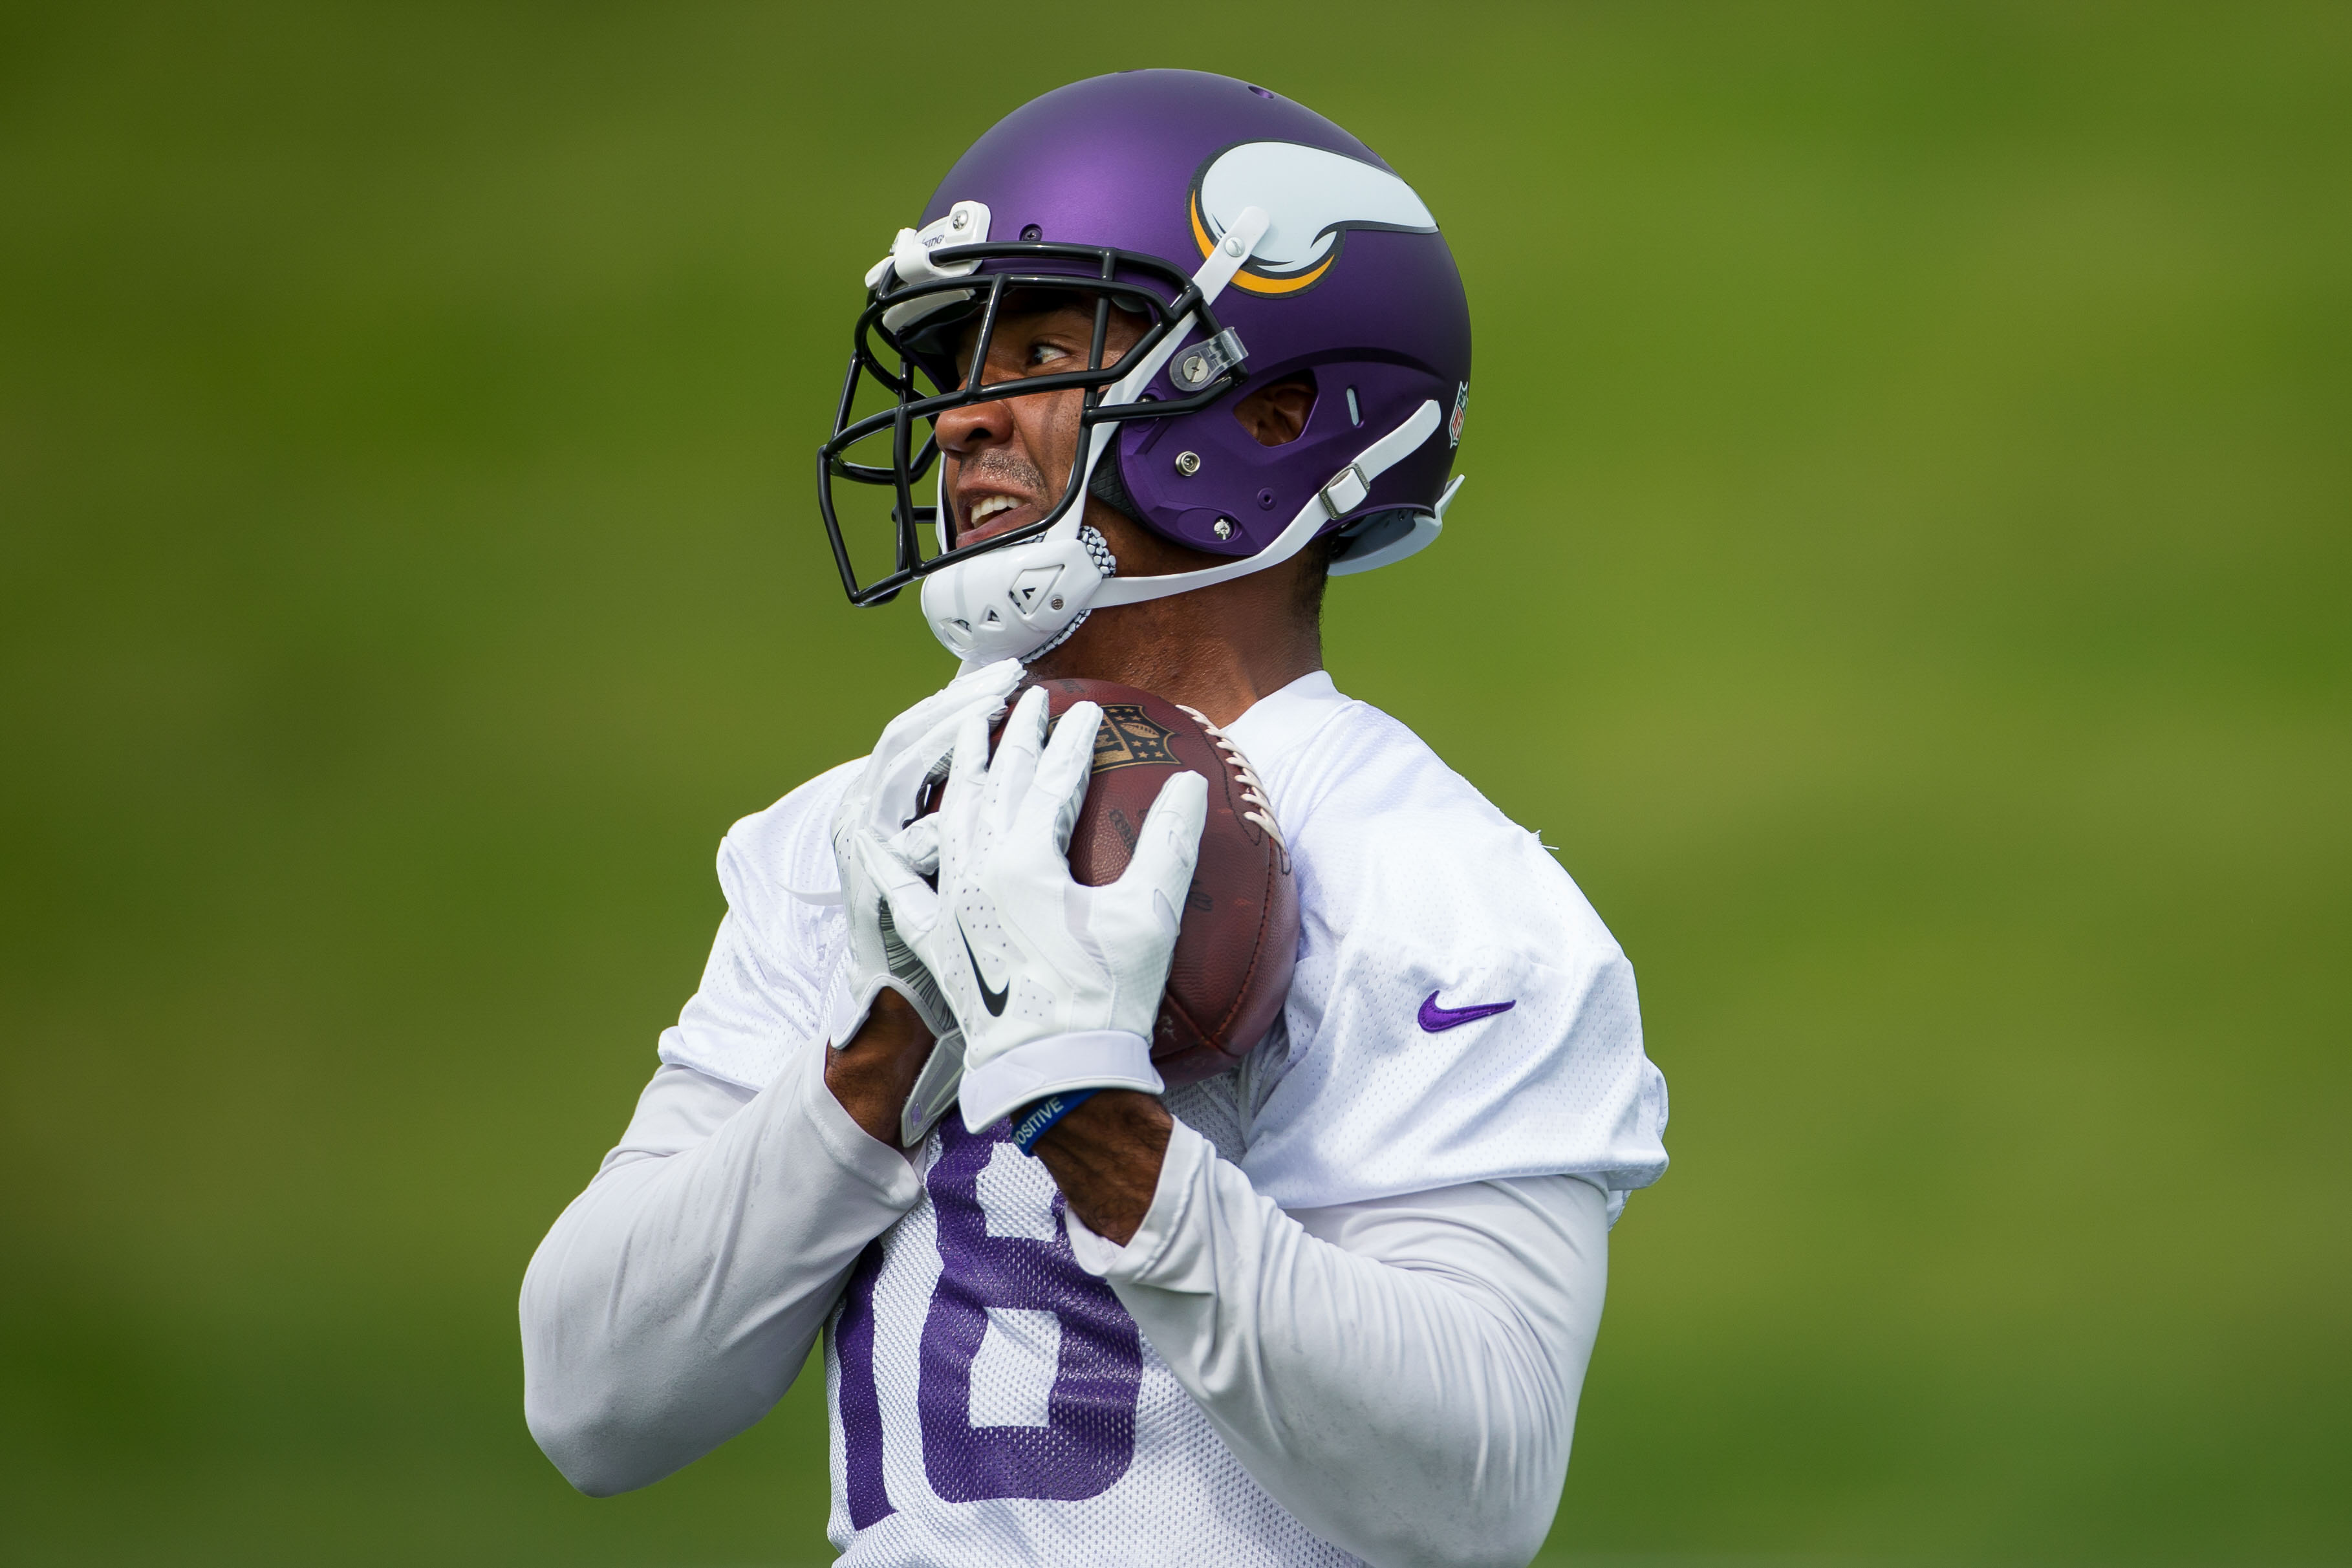 Teddy bridgewater injury update vikings expect qb to miss 2017 too report says sporting news - Michael Floyd Suspended Four Games By Nfl